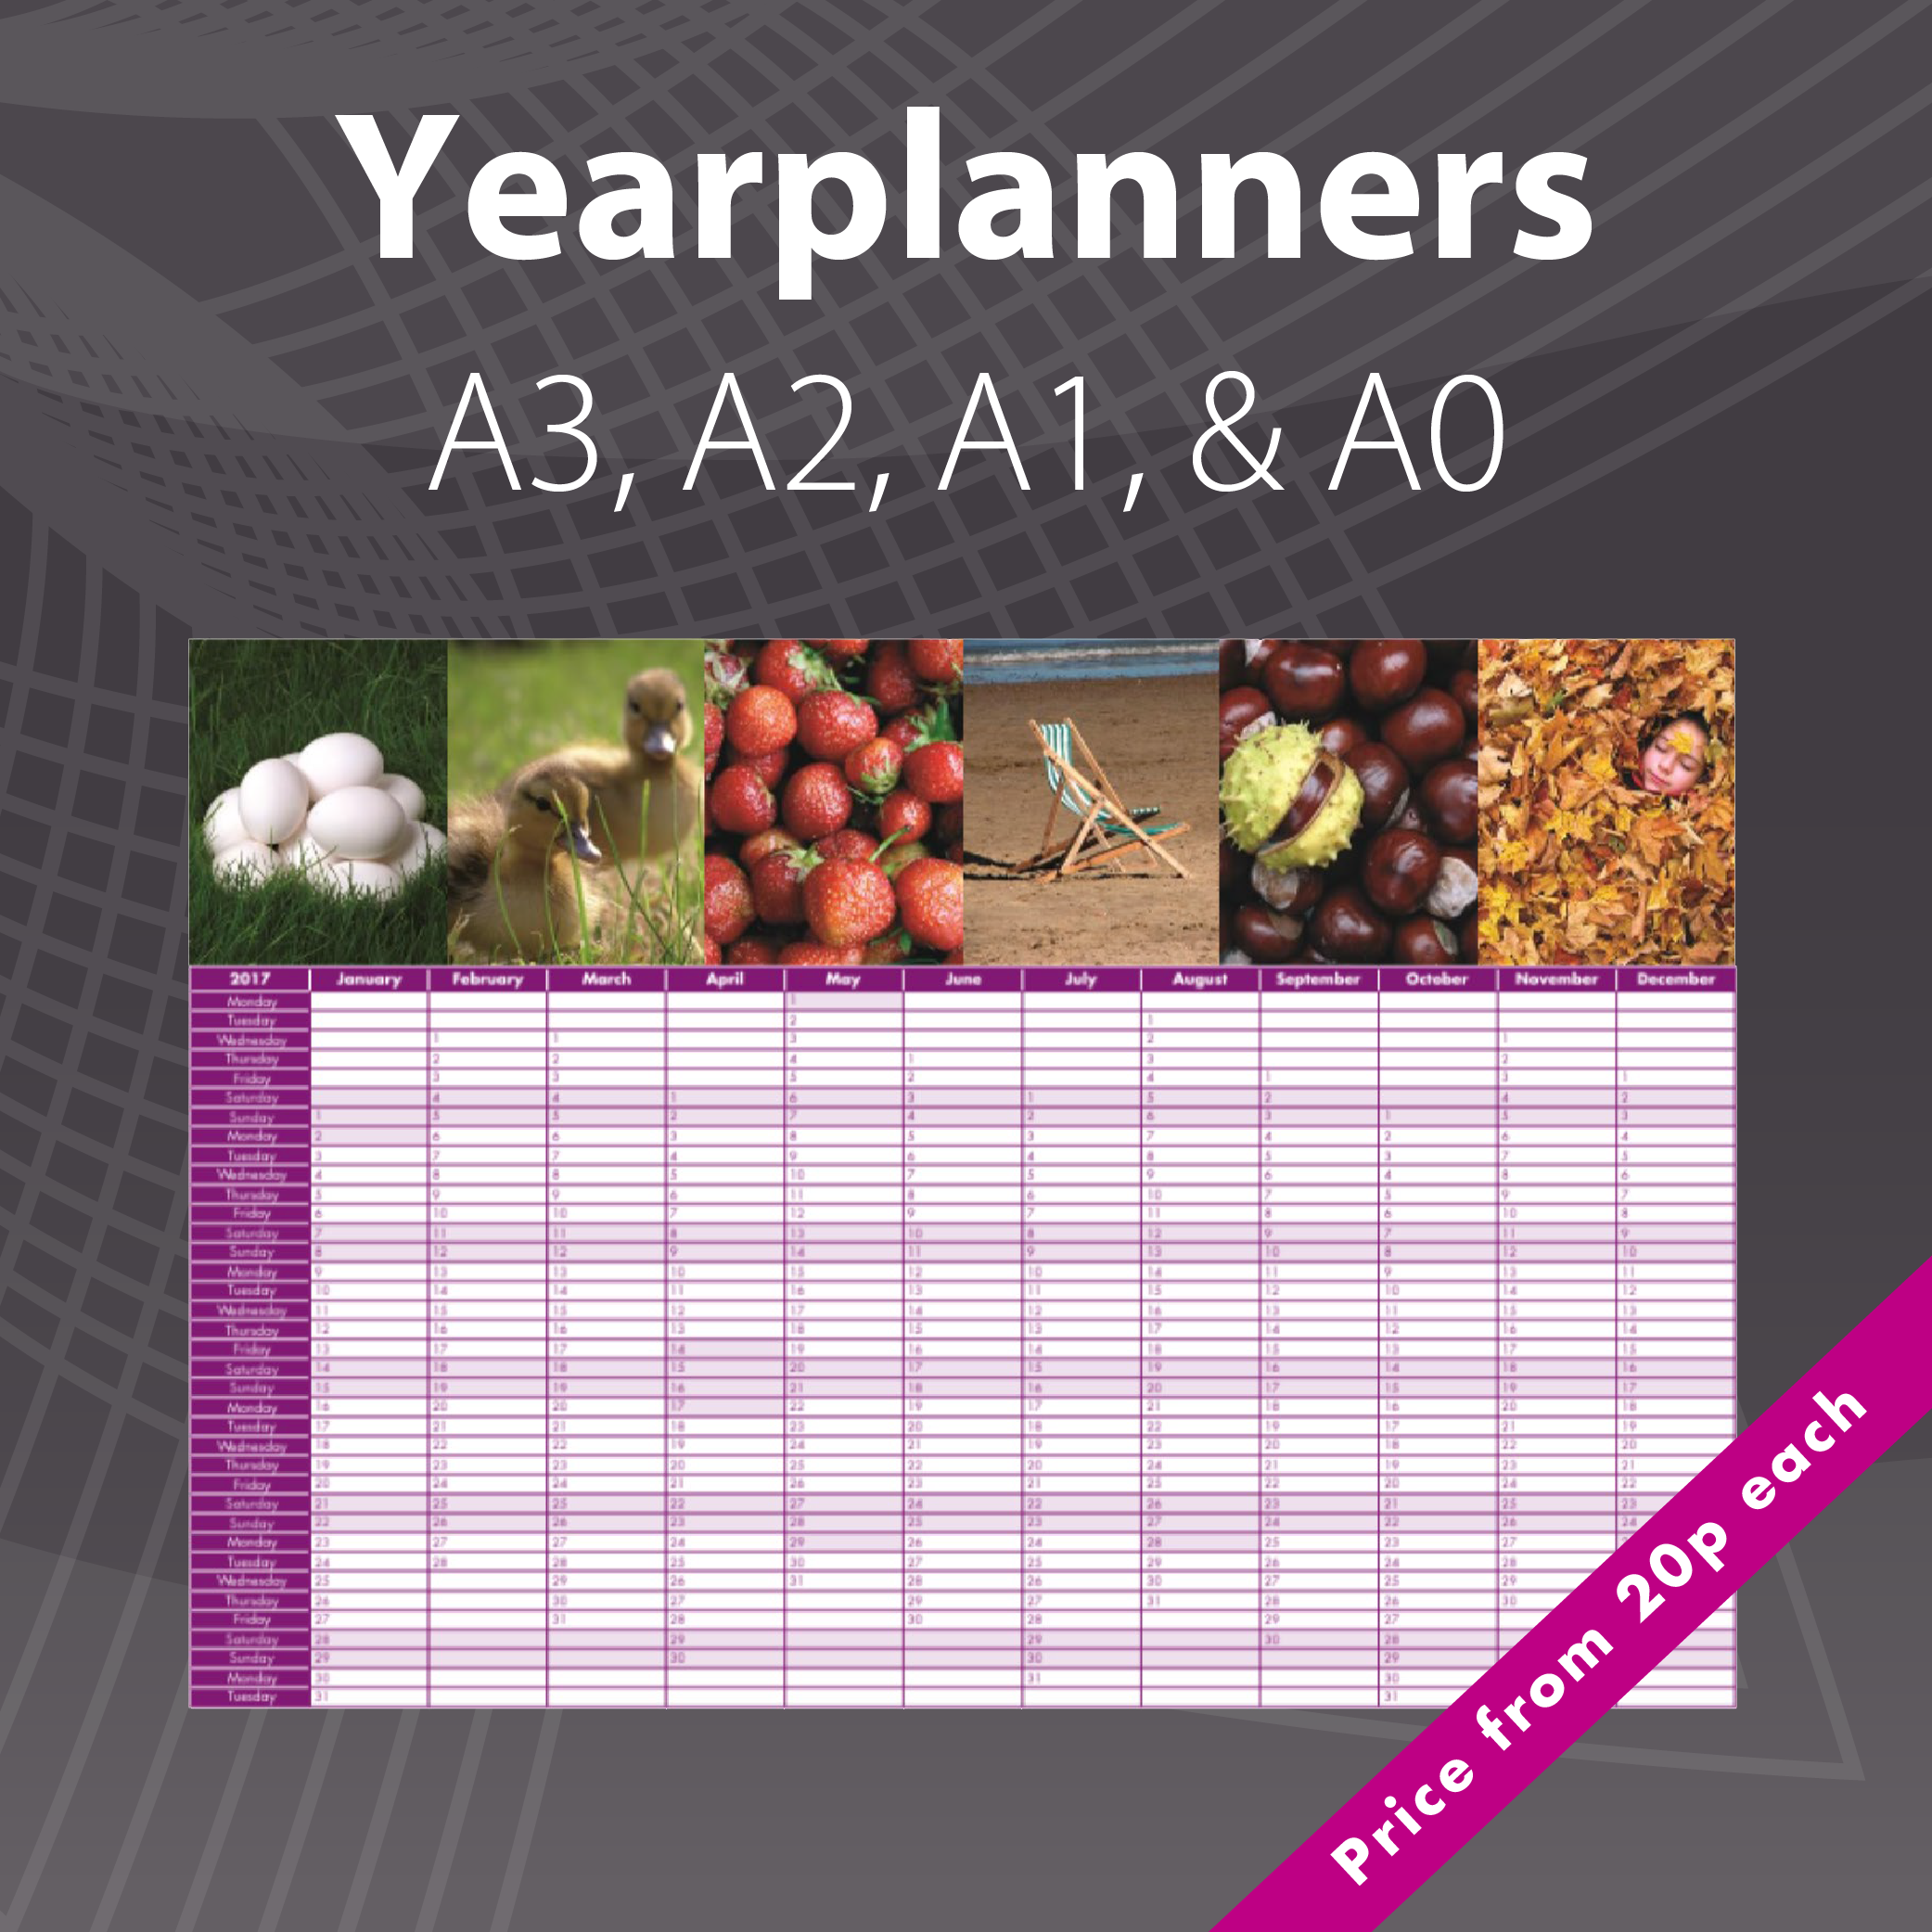 2018 Photo Yearplanners & Wallplanners